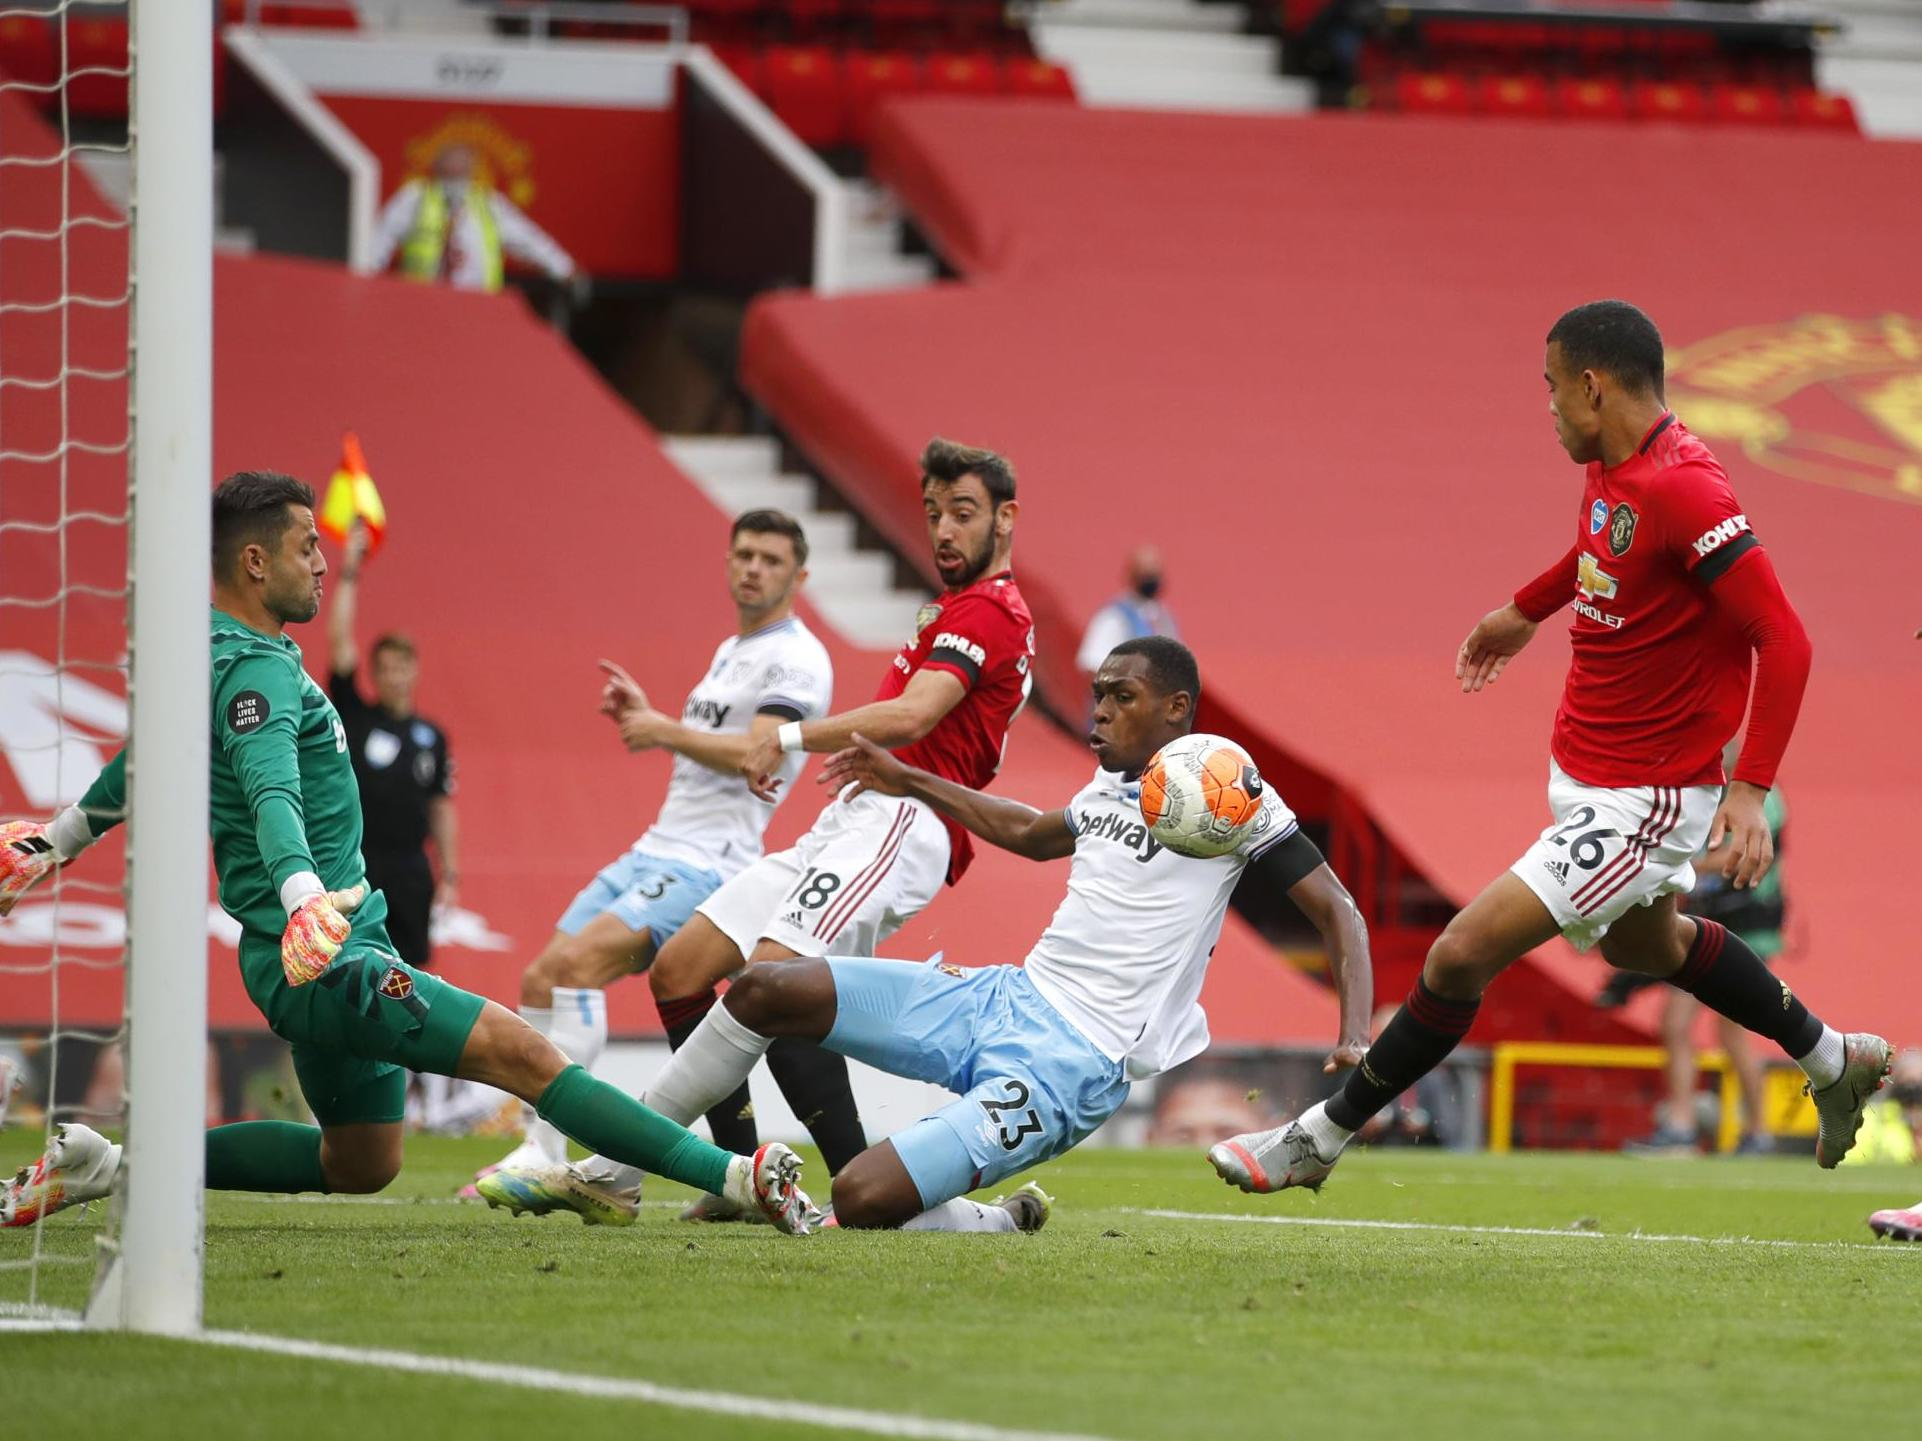 Man United Vs West Ham Result Player Ratings As Hammers Hold Ole Gunnar Solskjaer S Side The Independent The Independent